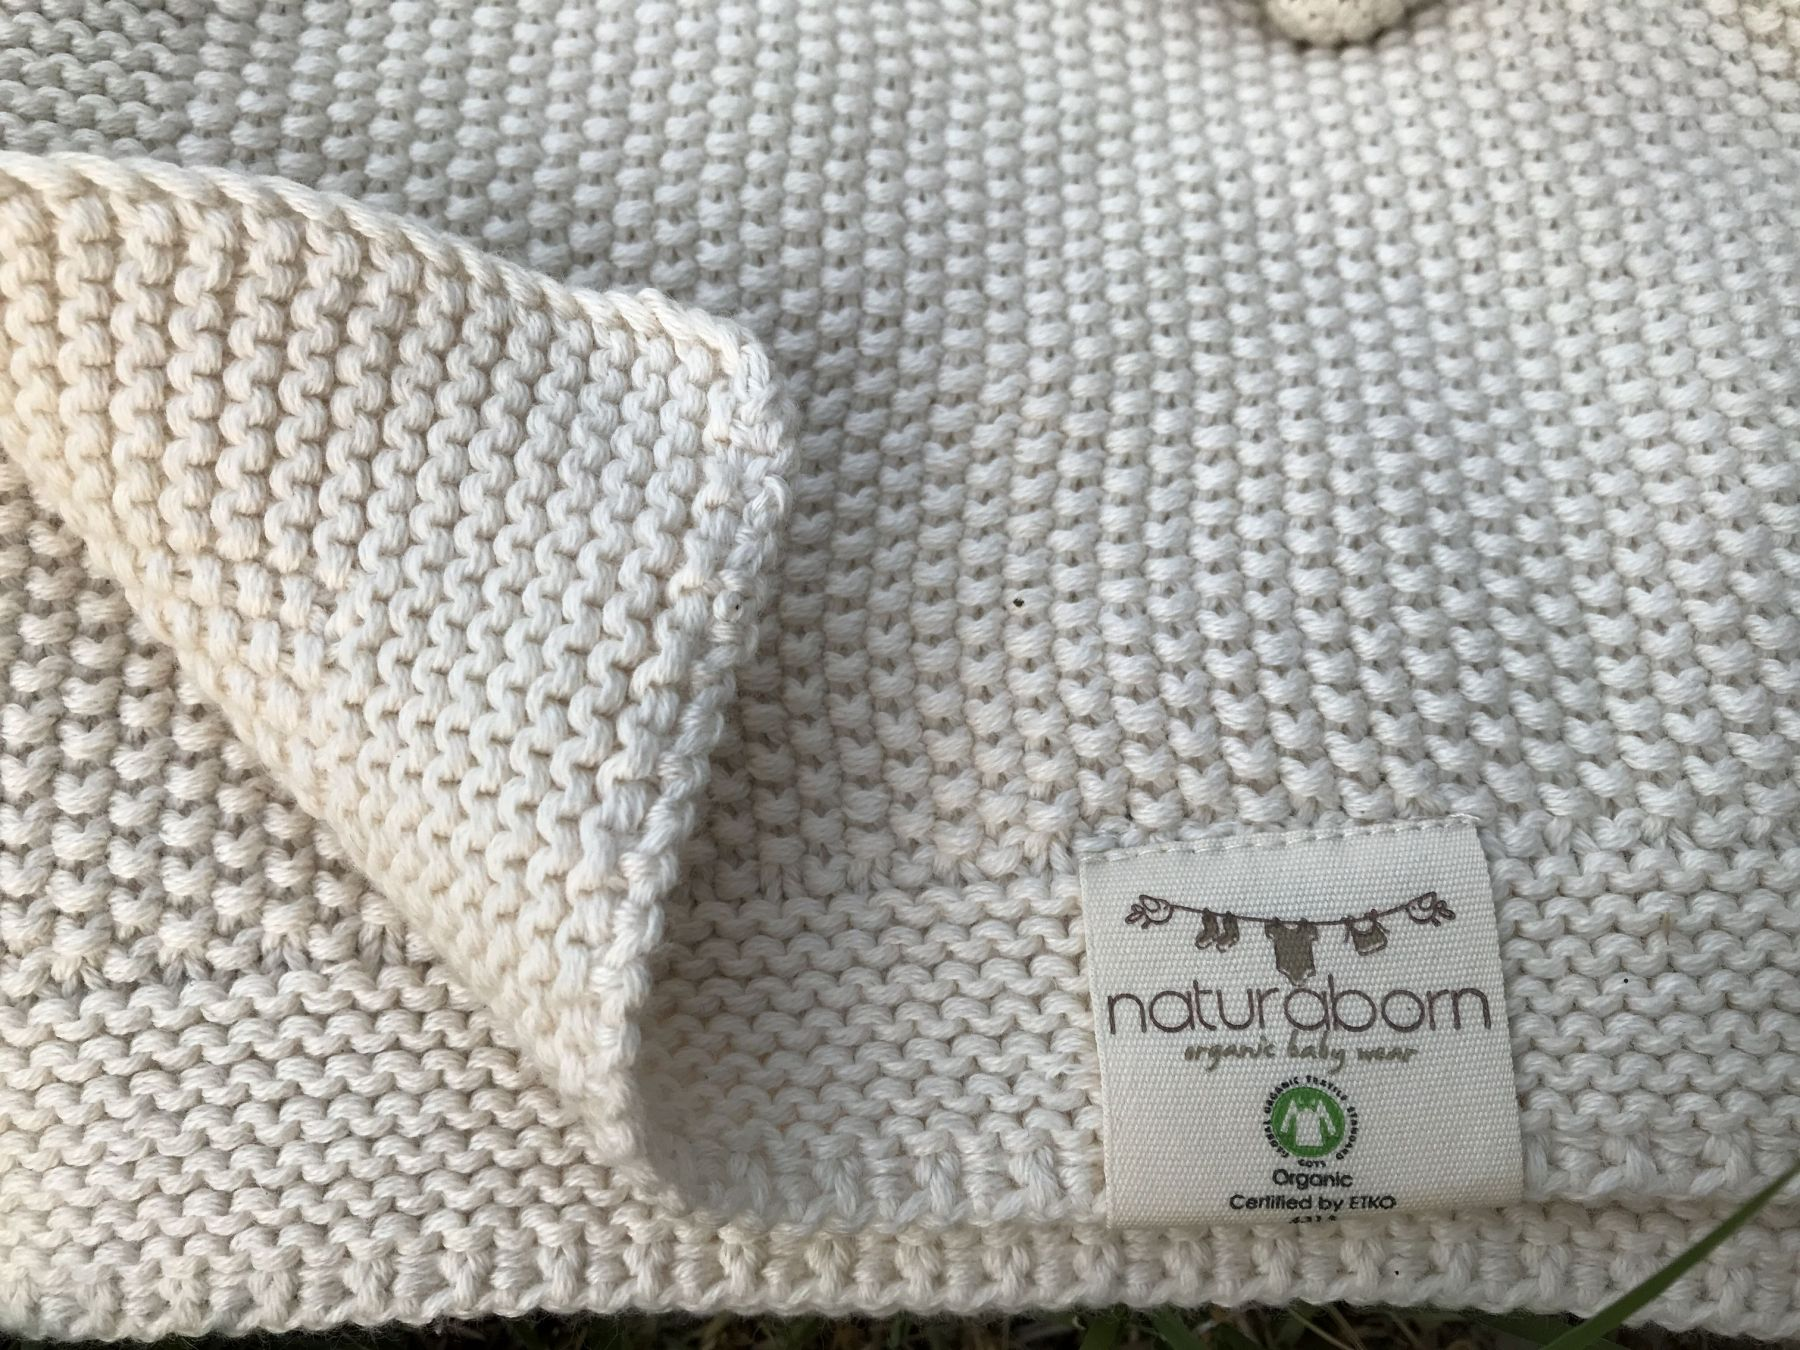 GOTS Certified Organic Baby Trickot Knitted Blanket 80x100 cm